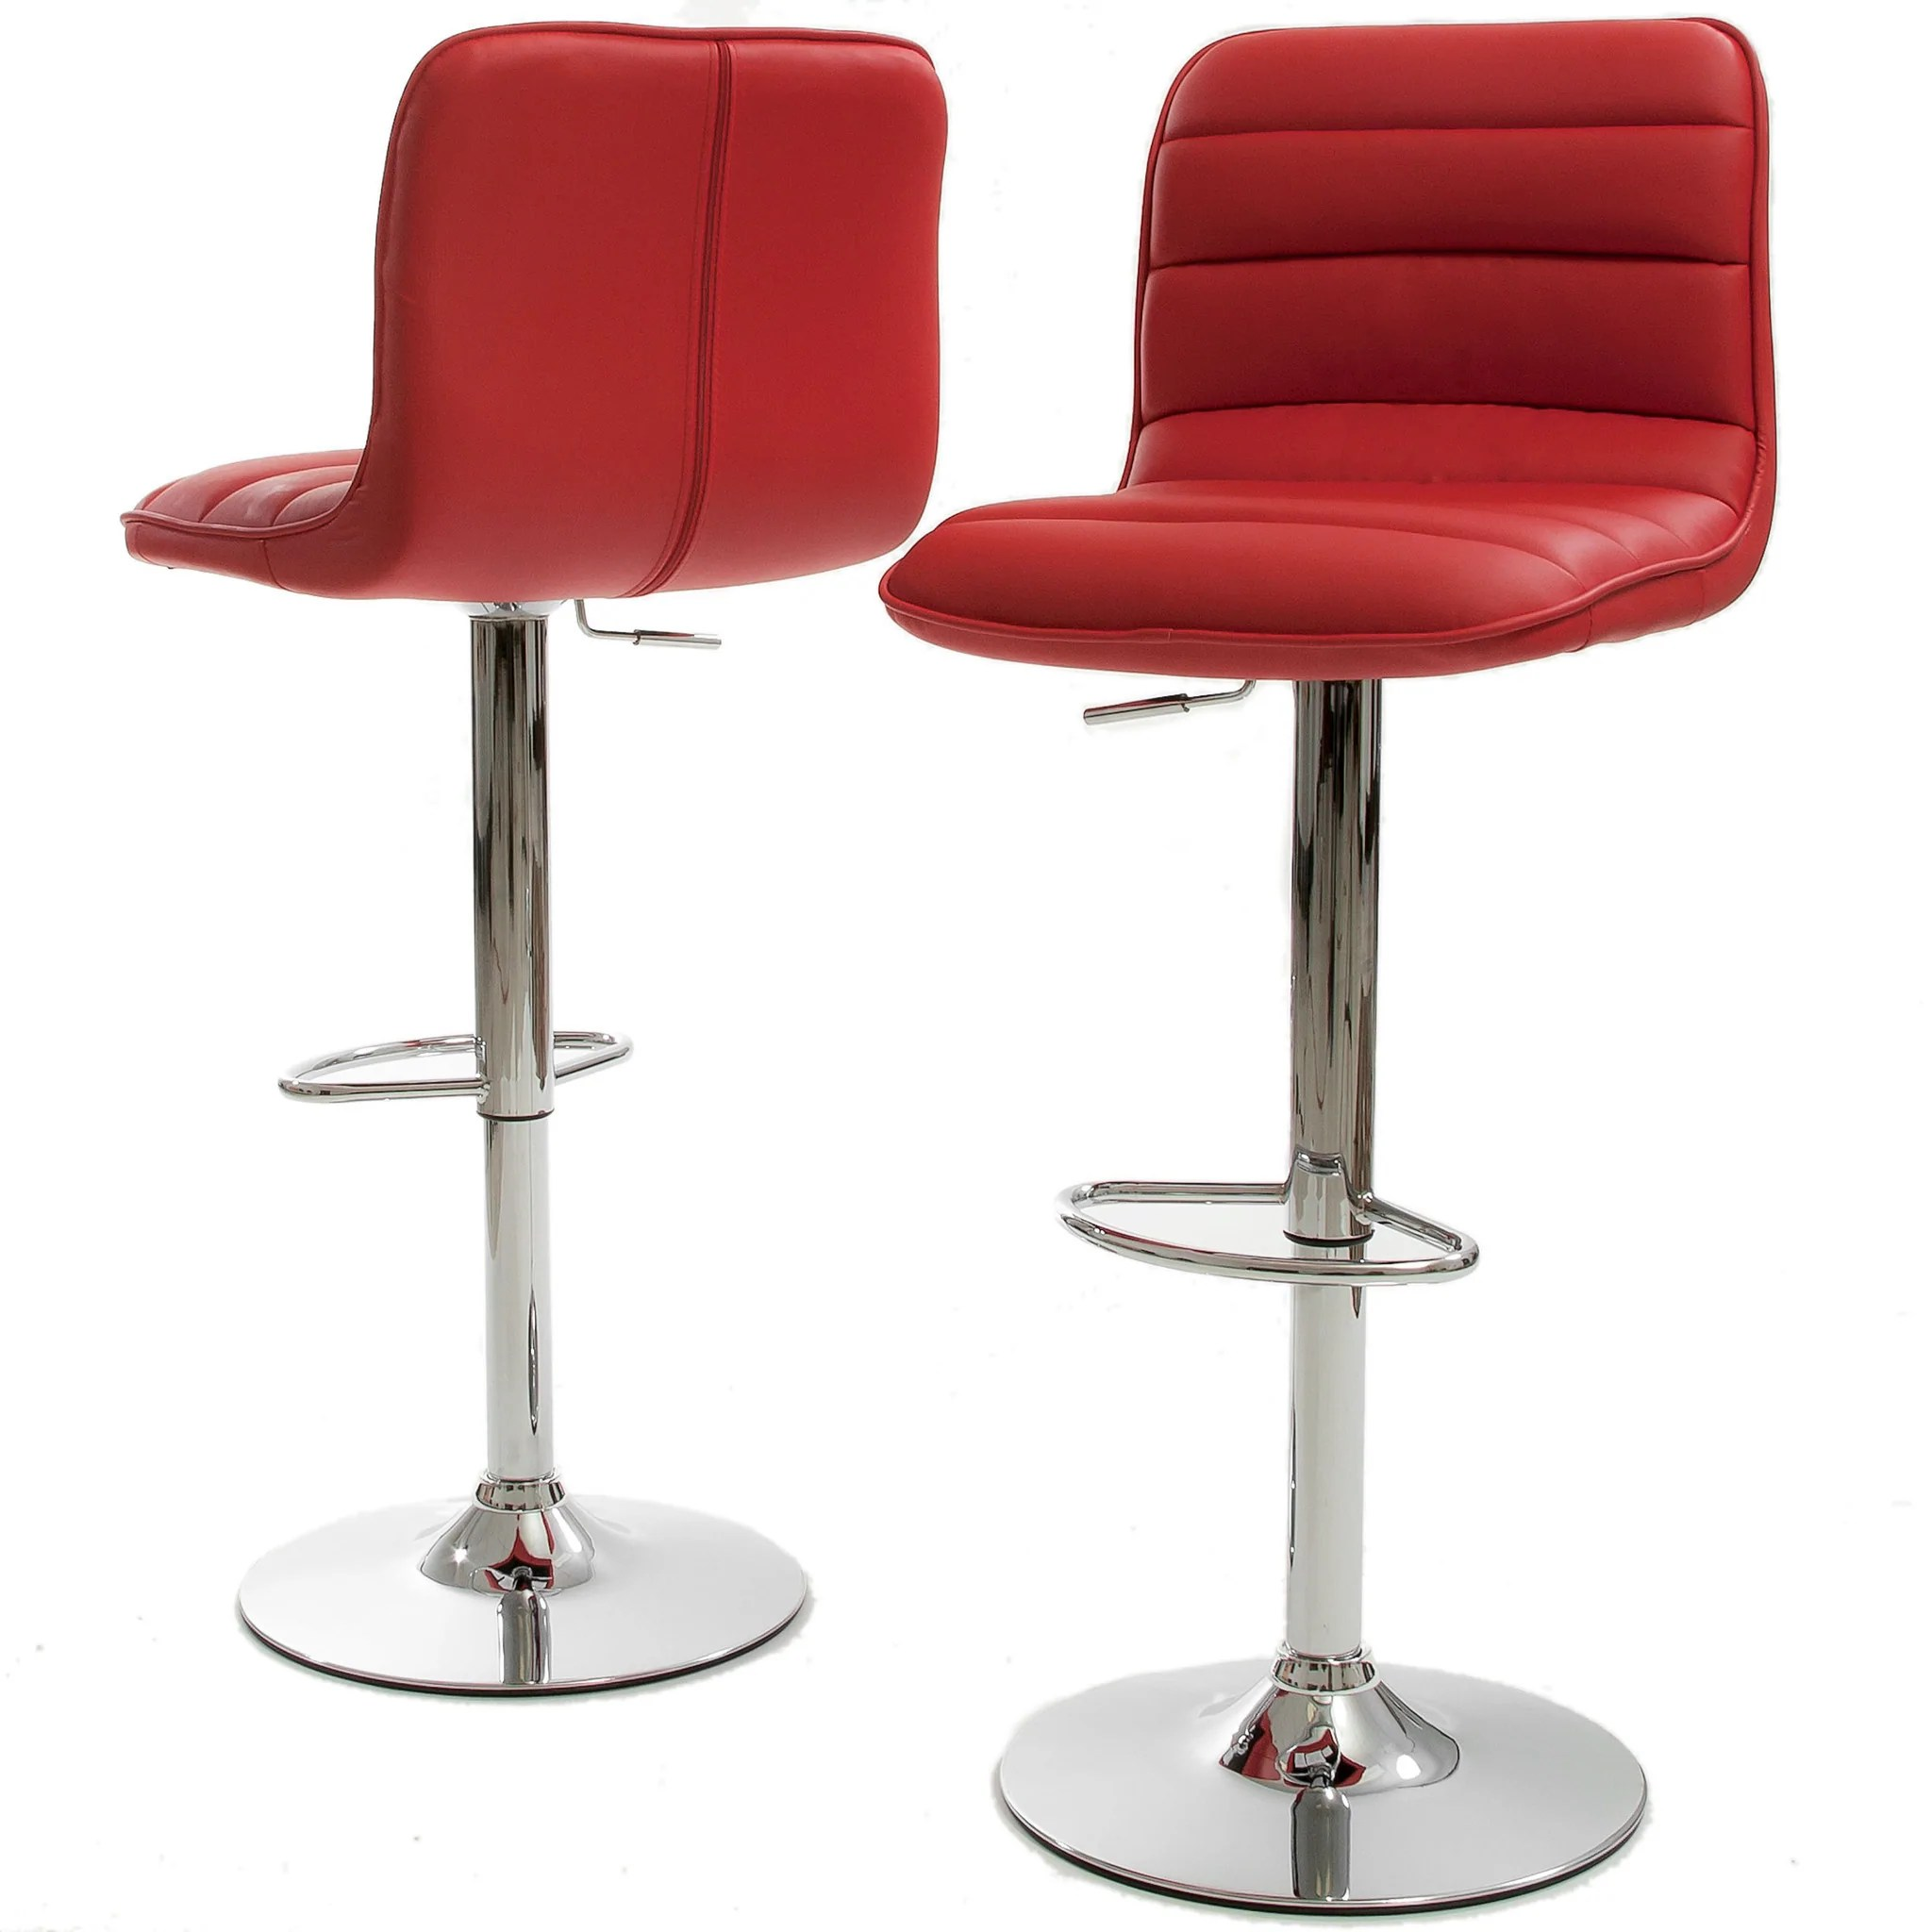 Red Bar Chairs Abs Tractor Seat Adjustable Bar Stools Swivel Chrome